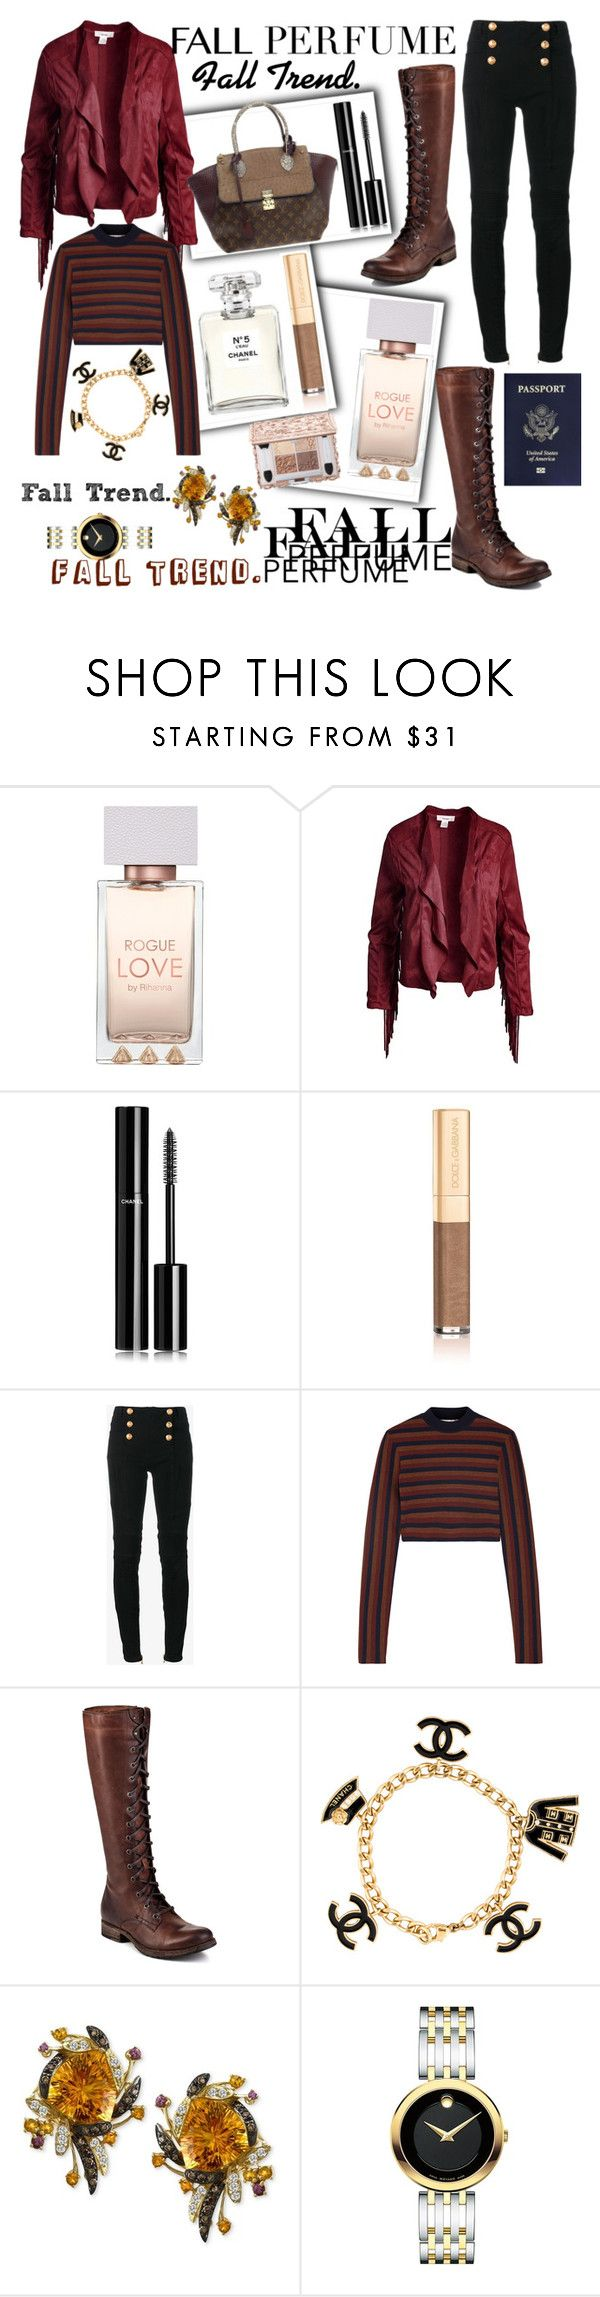 """""""Fall Perfume."""" by seanahr ❤ liked on Polyvore featuring Chanel, Sans Souci, Dolce&Gabbana, Balmain, Victoria Beckham, Frye, R.H. Macy's & Co., Movado and Louis Vuitton"""